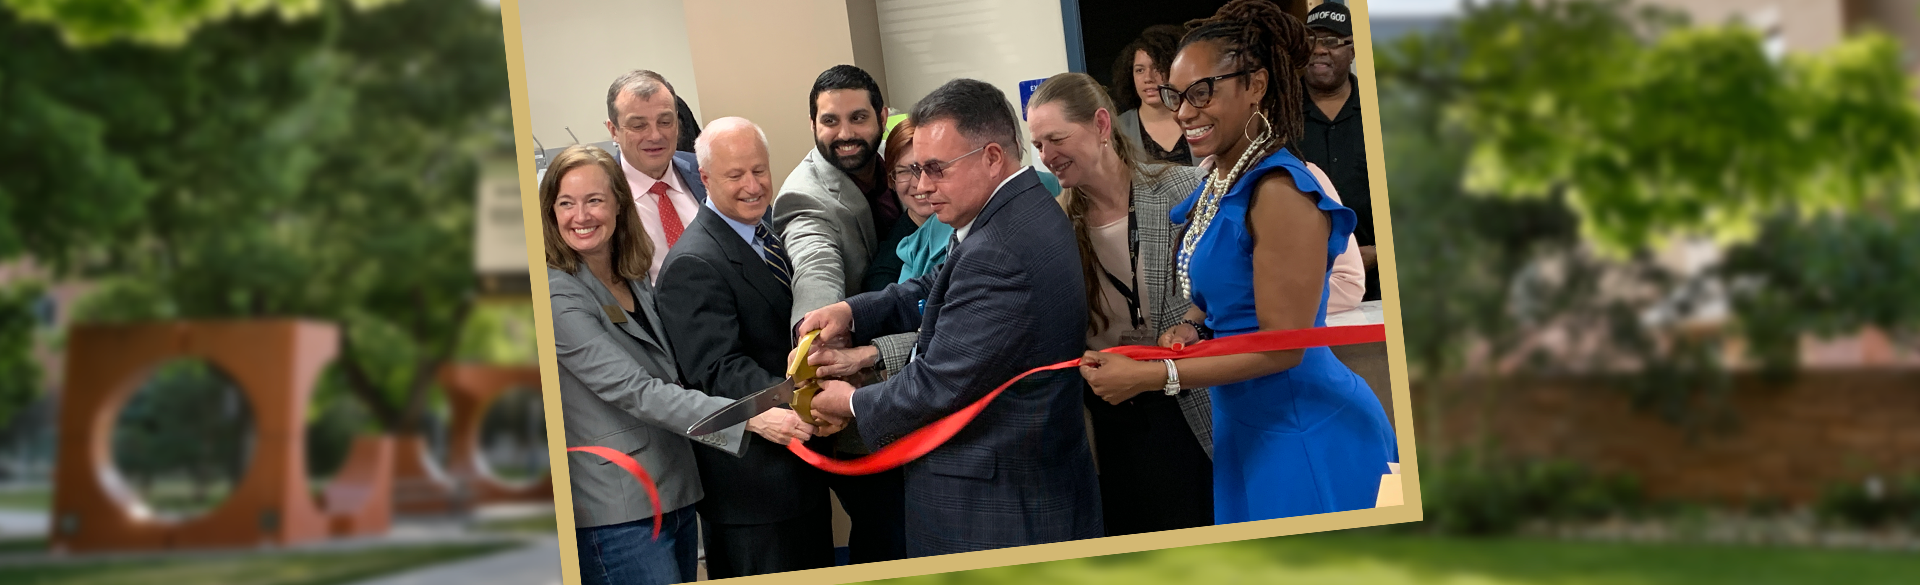 CU Partners with Salud to Open Clinic in Aurora